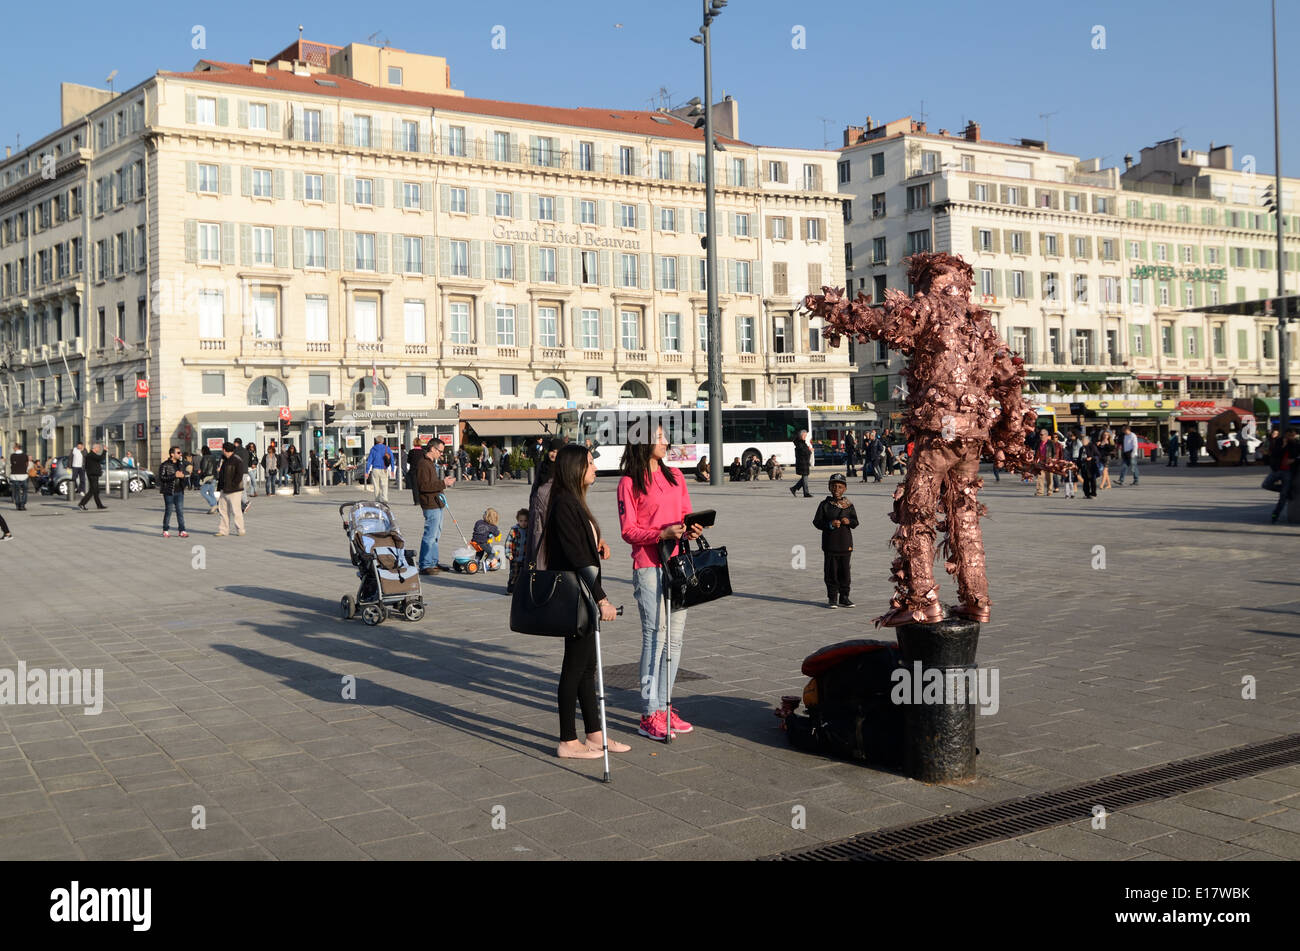 Tourists Watching Living Sculpture Performing or Street Theater on the Quay or Quai des Belges Marseille or Marseilles Stock Photo